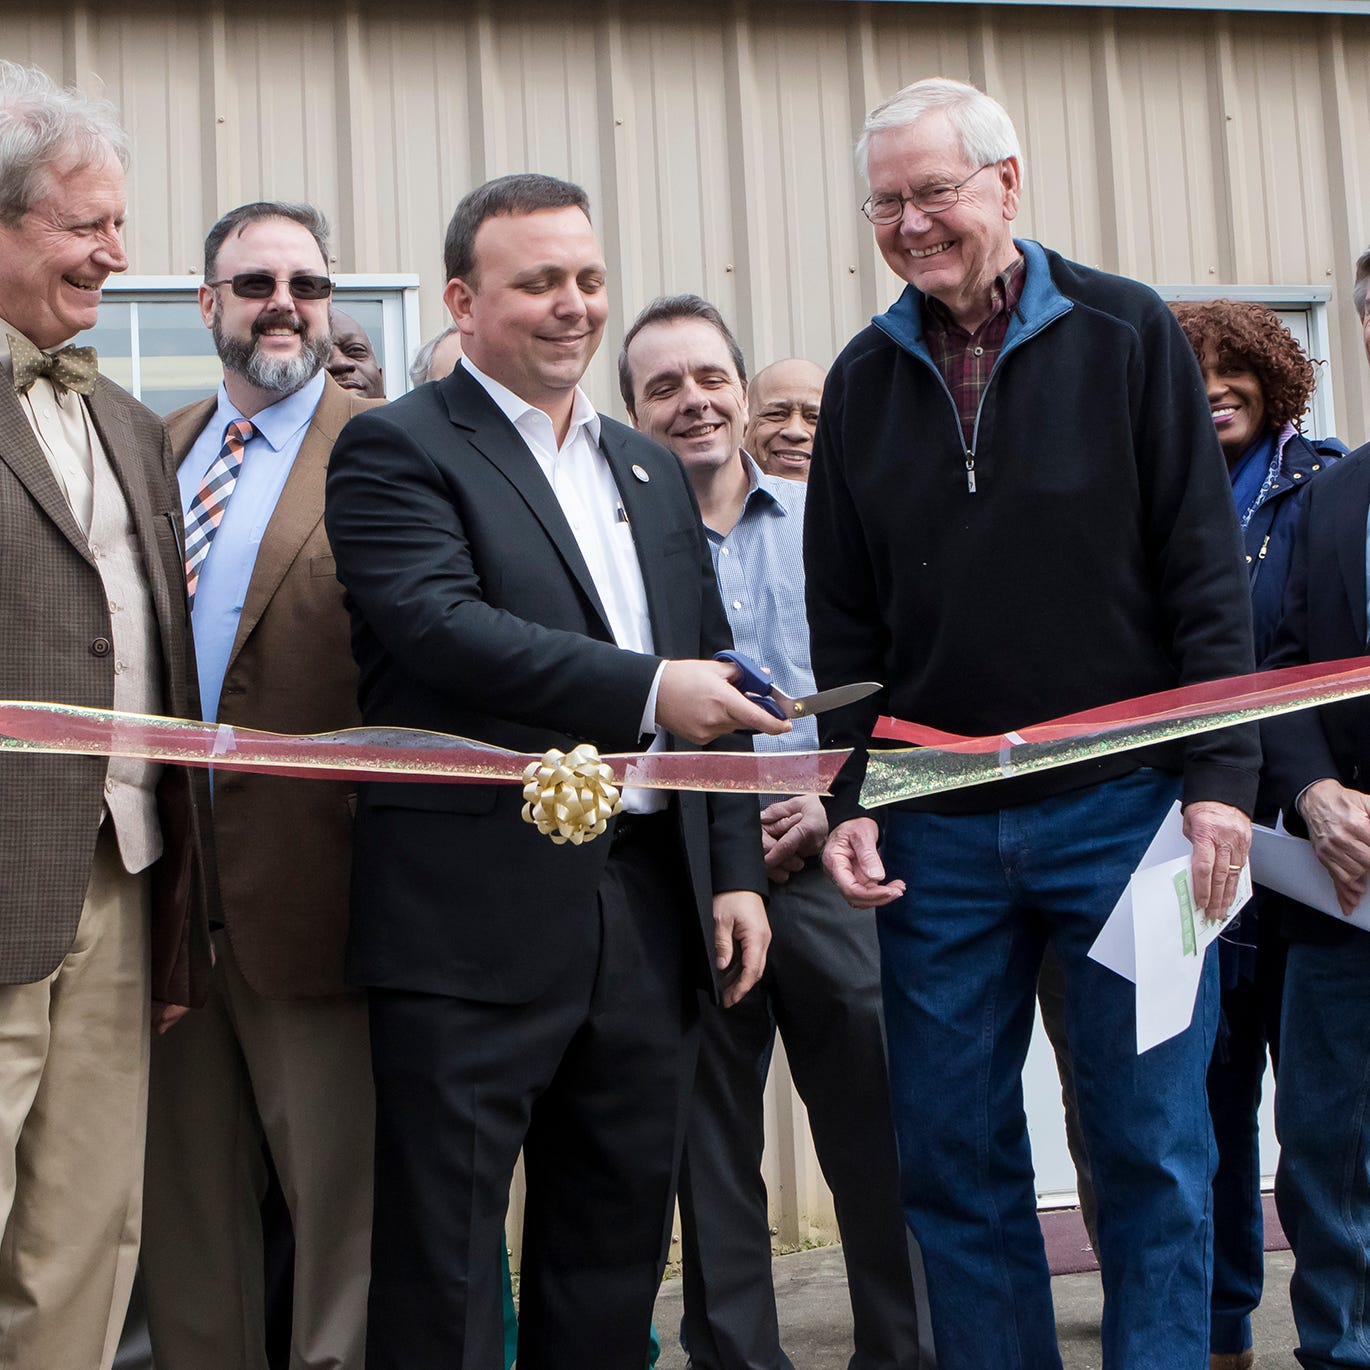 Jon Tellifero, left, City Council Member Michael Echols and    State Rep Frank Hoffmman (R- West Monroe) cut the ribbon on the new DeSard St. Shelter building, formerly, The Rose of Sharon Baptist Church, in Monroe, La. on Jan. 22. The shelter was recently able to purchase property belonging to the former church in order to expand so it may help more people in need.